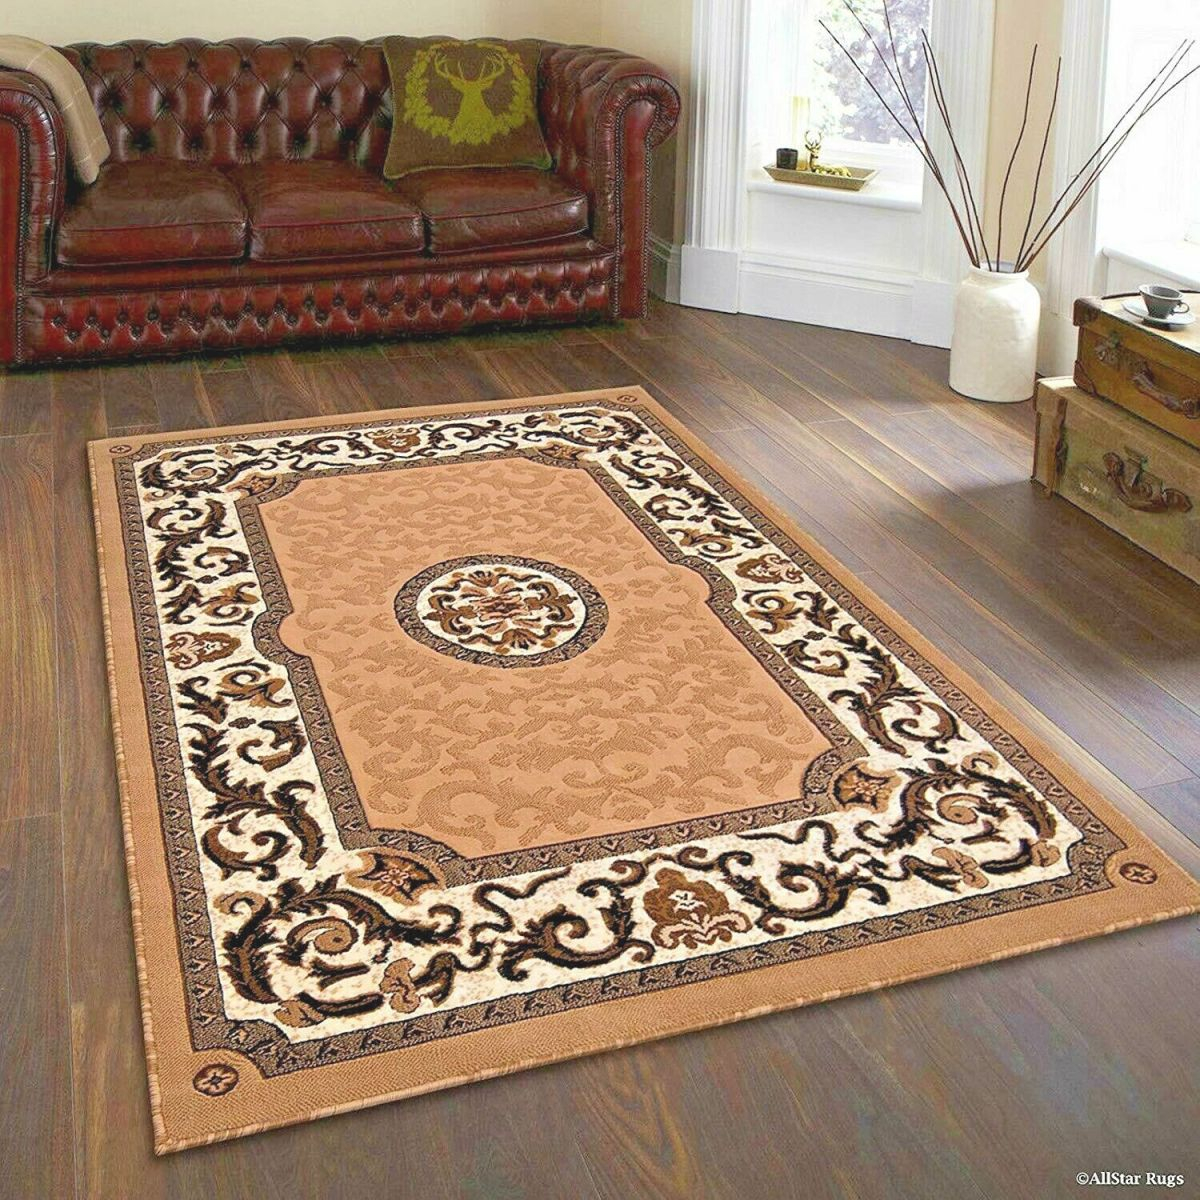 Details About Rugs Area Rugs Carpets 8X10 Rug Oriental Living Room Large Cool Floor Big Rugs ⭐ with regard to Awesome Ideas For Big Area Rugs For Living Room